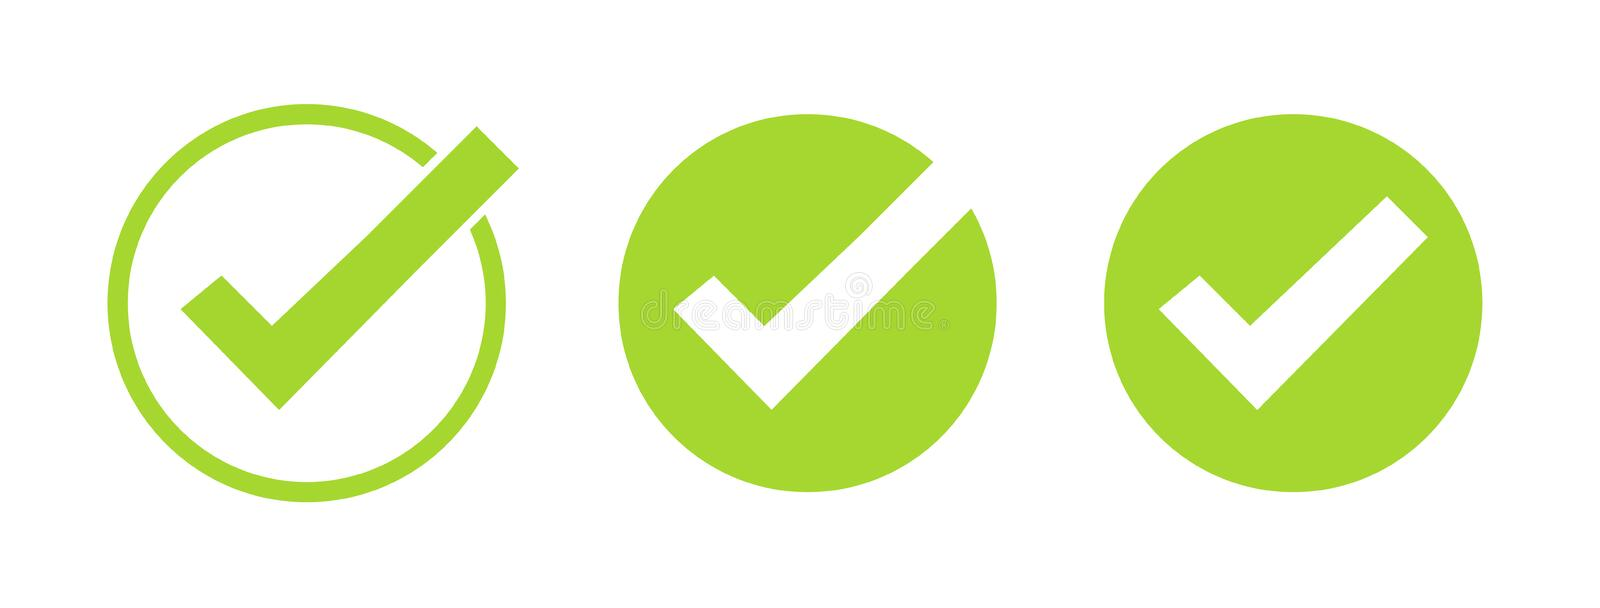 Set of green tick icons. Vector symbols set, checkmarks collection isolated on white background. Checked icon or correct choice royalty free illustration